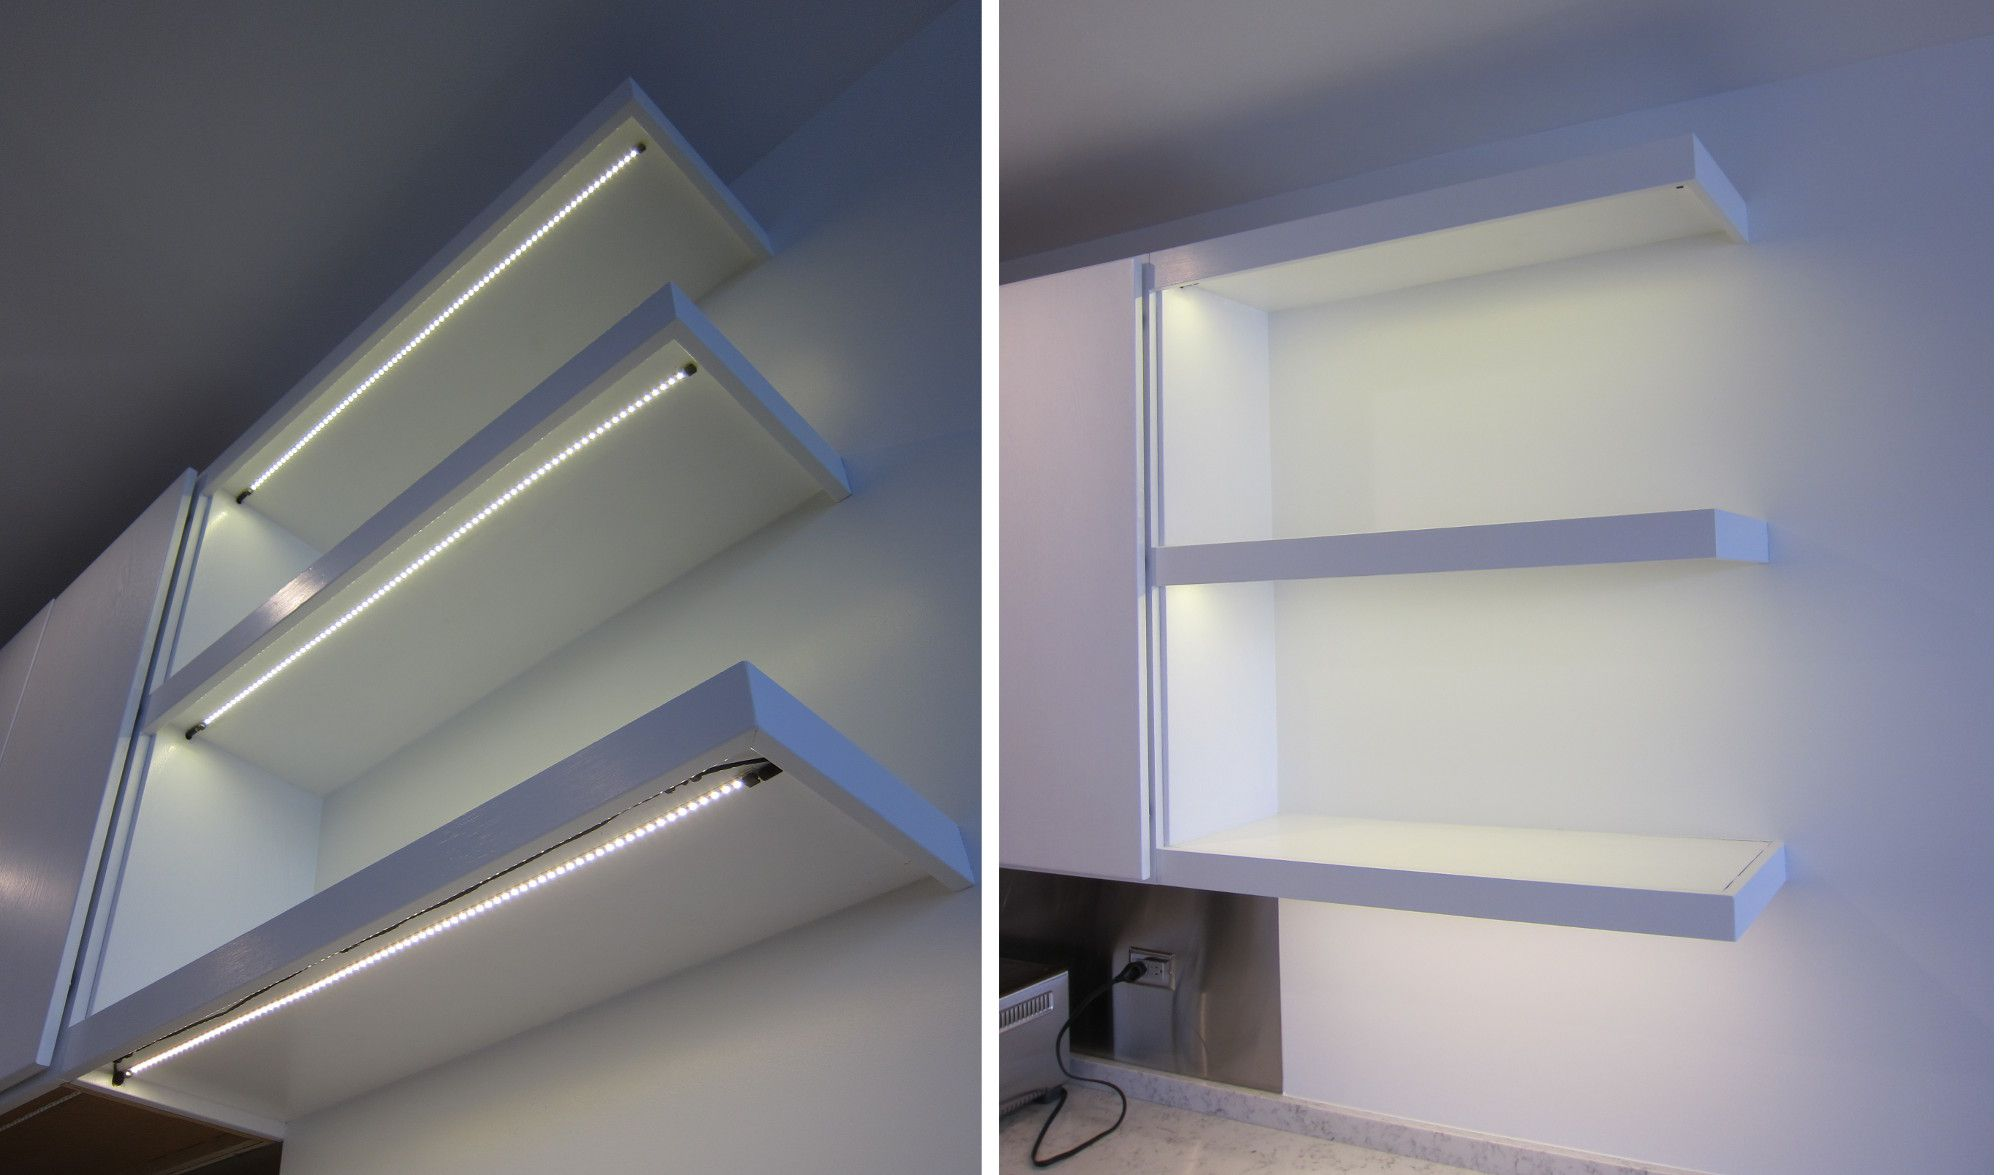 Under The Shelf Customizable LED Strips By Inspired LED  Simply Stick On  And Plug In! Perfect For The Kitchen, Office, And